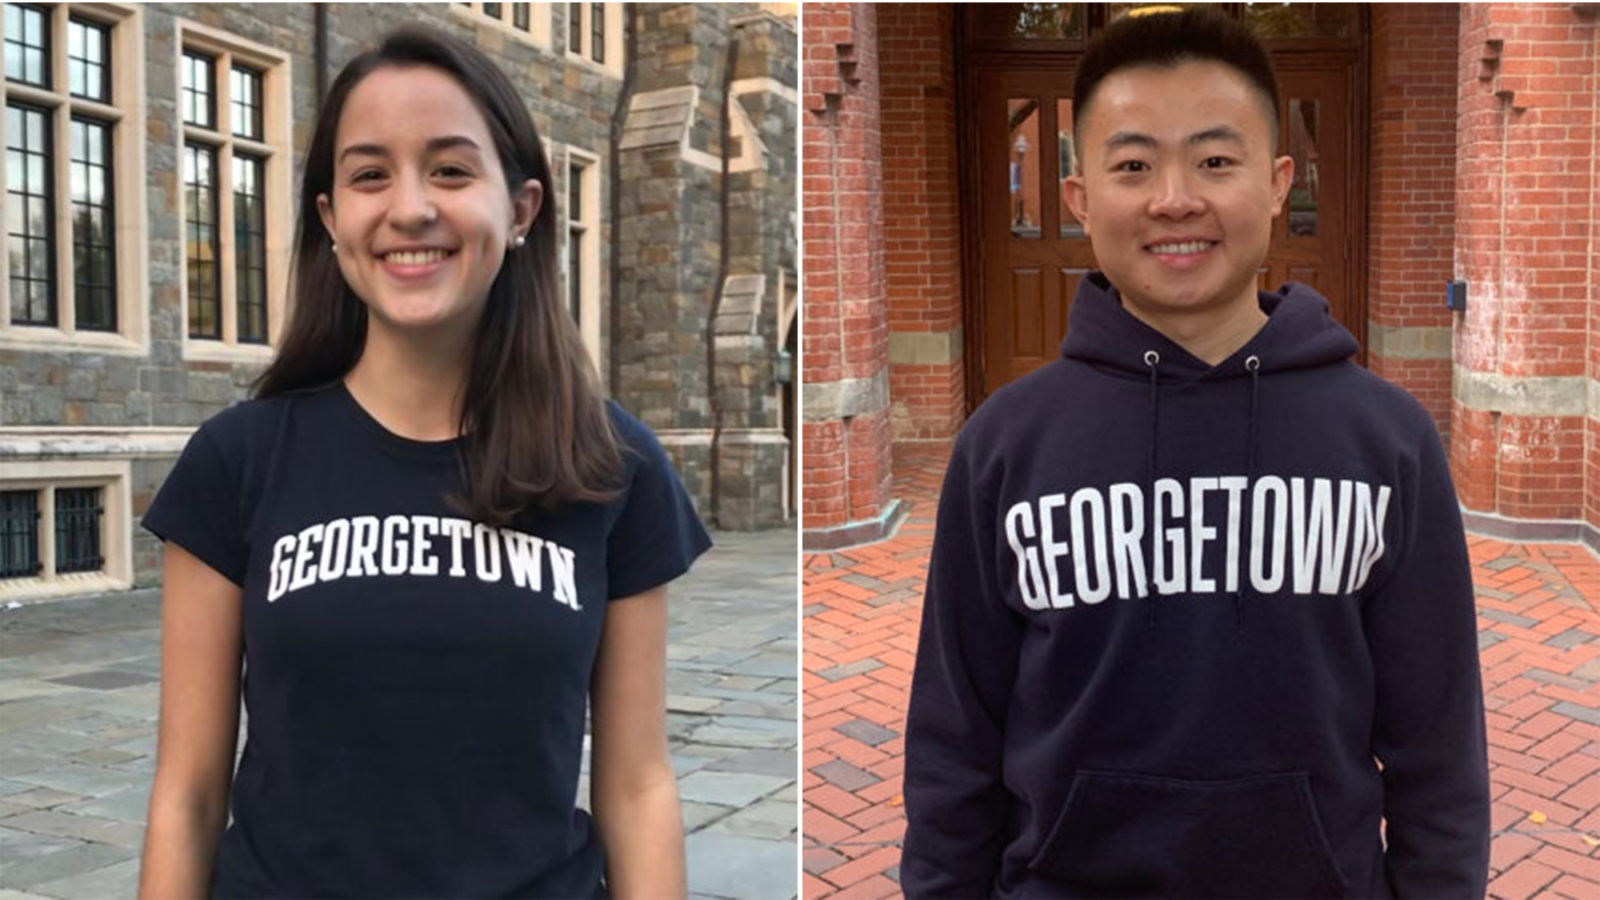 Elena Ortiz and Bryan Haiwen Zou stand in side-by-side photos wearing Georgetown shirts outside.